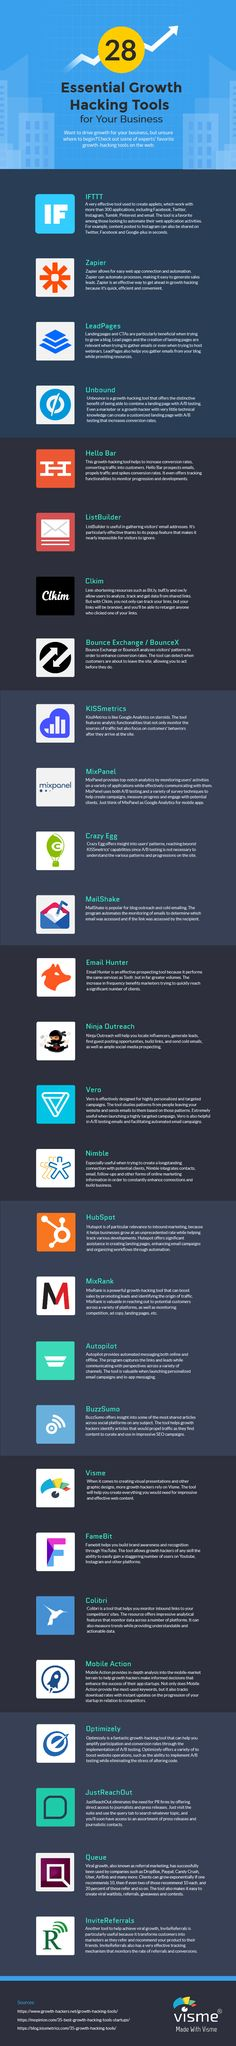 28 Essential Growth Hacking Tools to Rapidly Build Your Business [Infographic] Sales And Marketing, Marketing Tools, Business Marketing, Content Marketing, Online Marketing, Digital Marketing, Media Marketing, Business Infographics, Affiliate Marketing